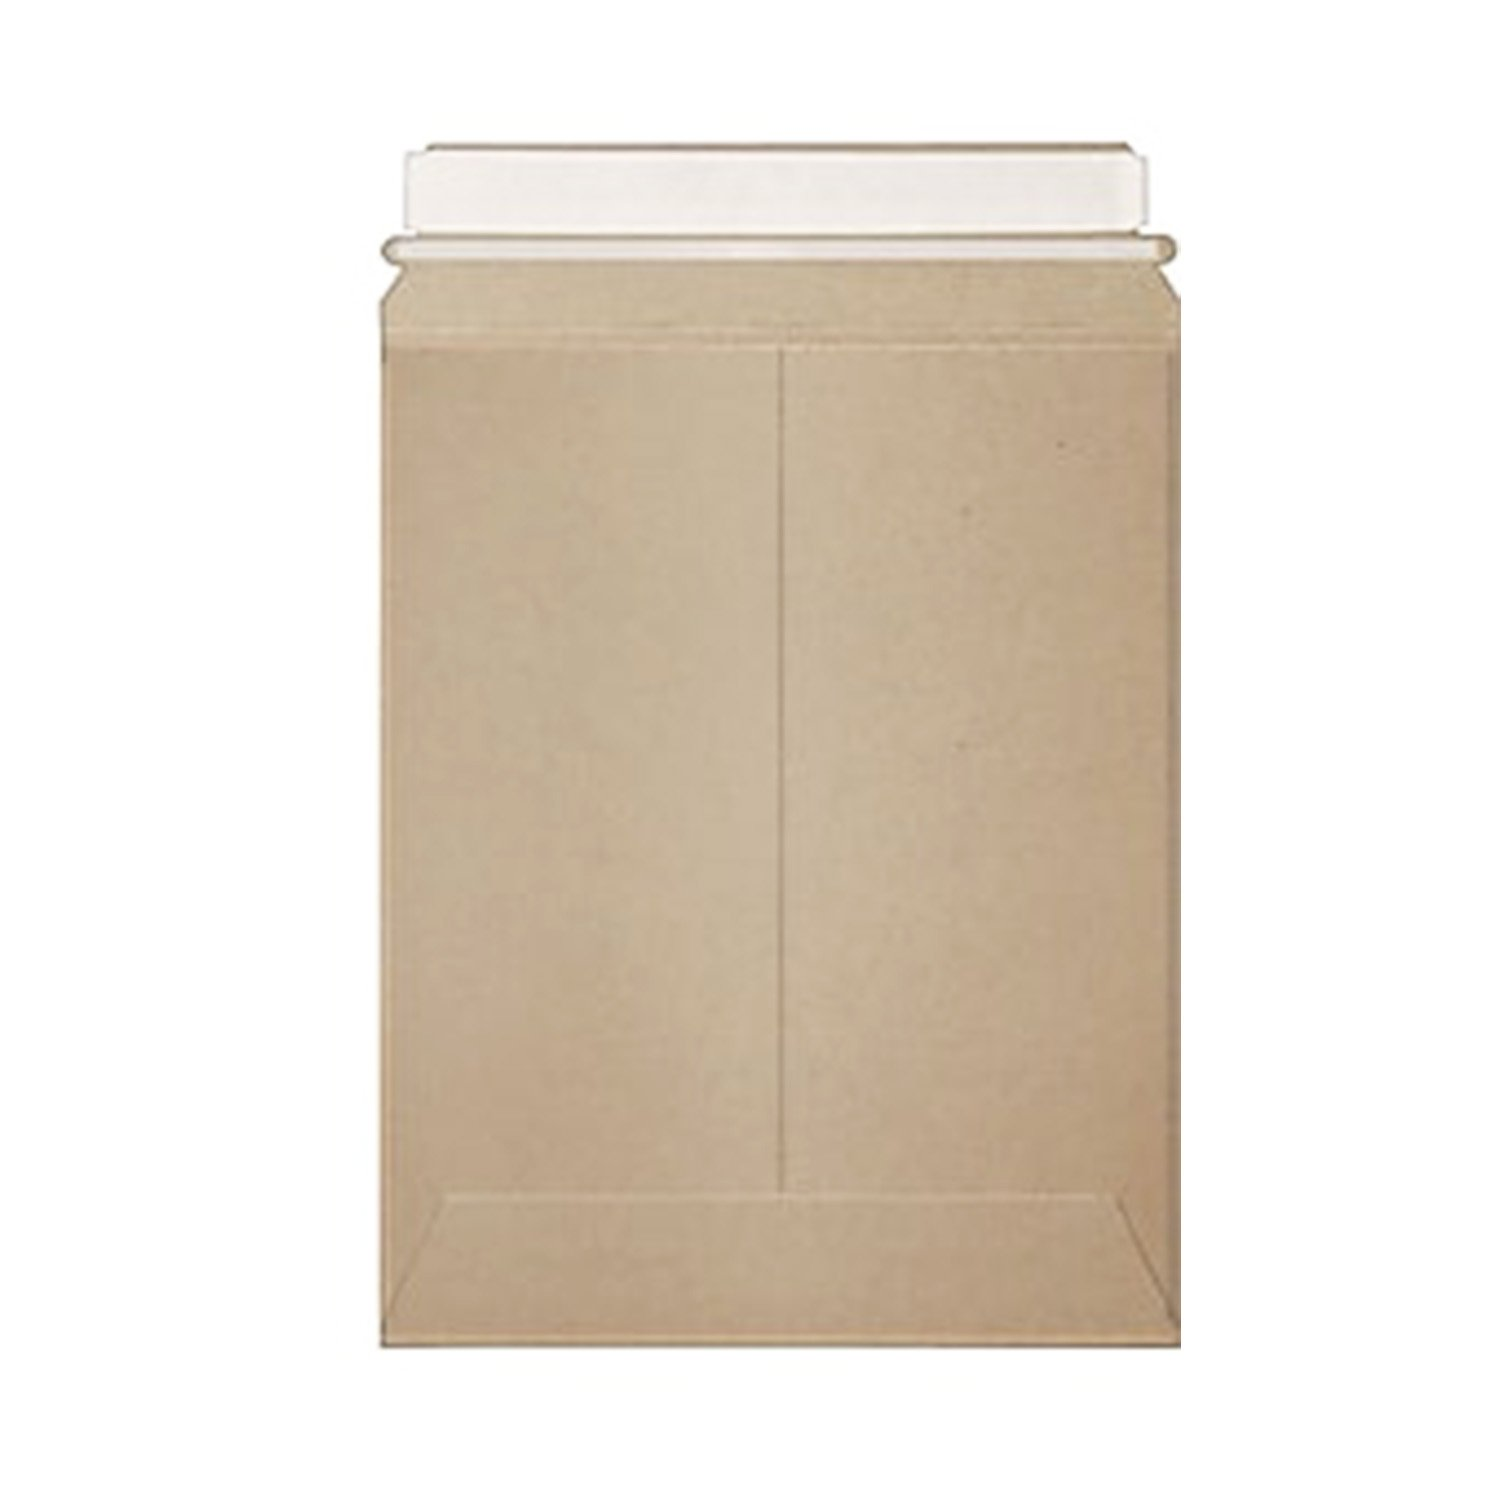 Stayflats Plus Mailers | Rigid Shipping Envelopes | Tamper Evident Security with Peel & Seal Pressure Sensitive Closure | Built-in Corner Protection | Kraft | 100 Per Case | 13'' x 18'' by Stayflats